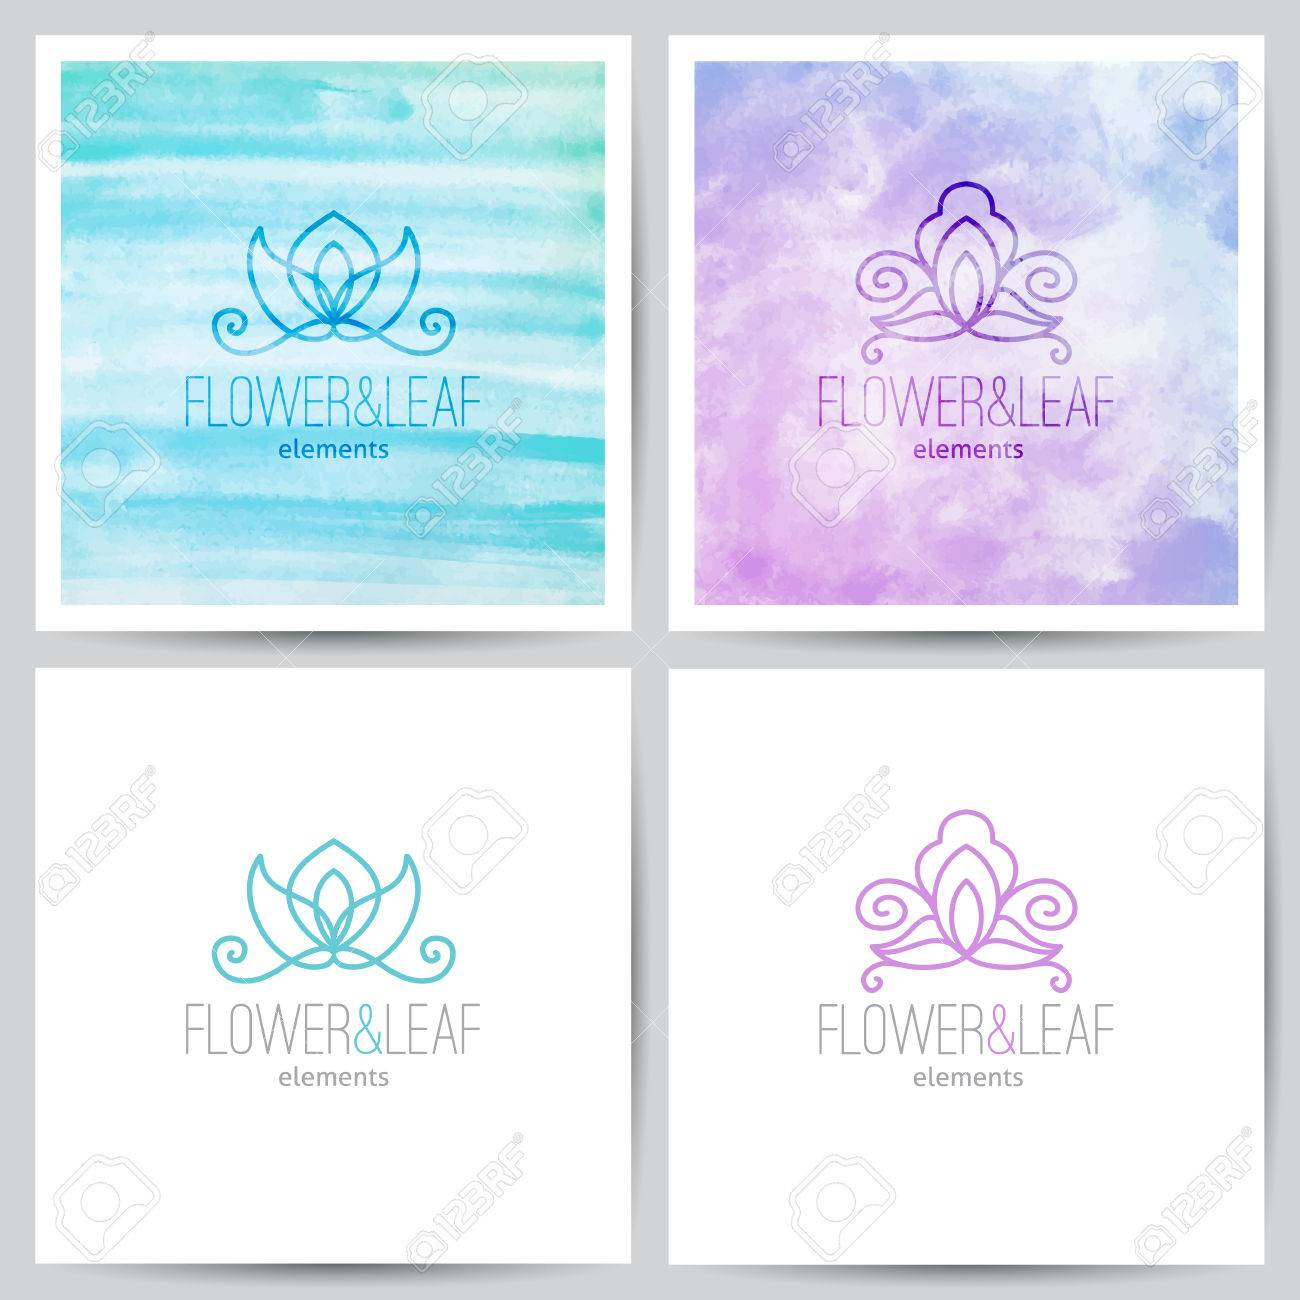 Two Floral Ornamental Logo On Watercolor Backgrounds And On White